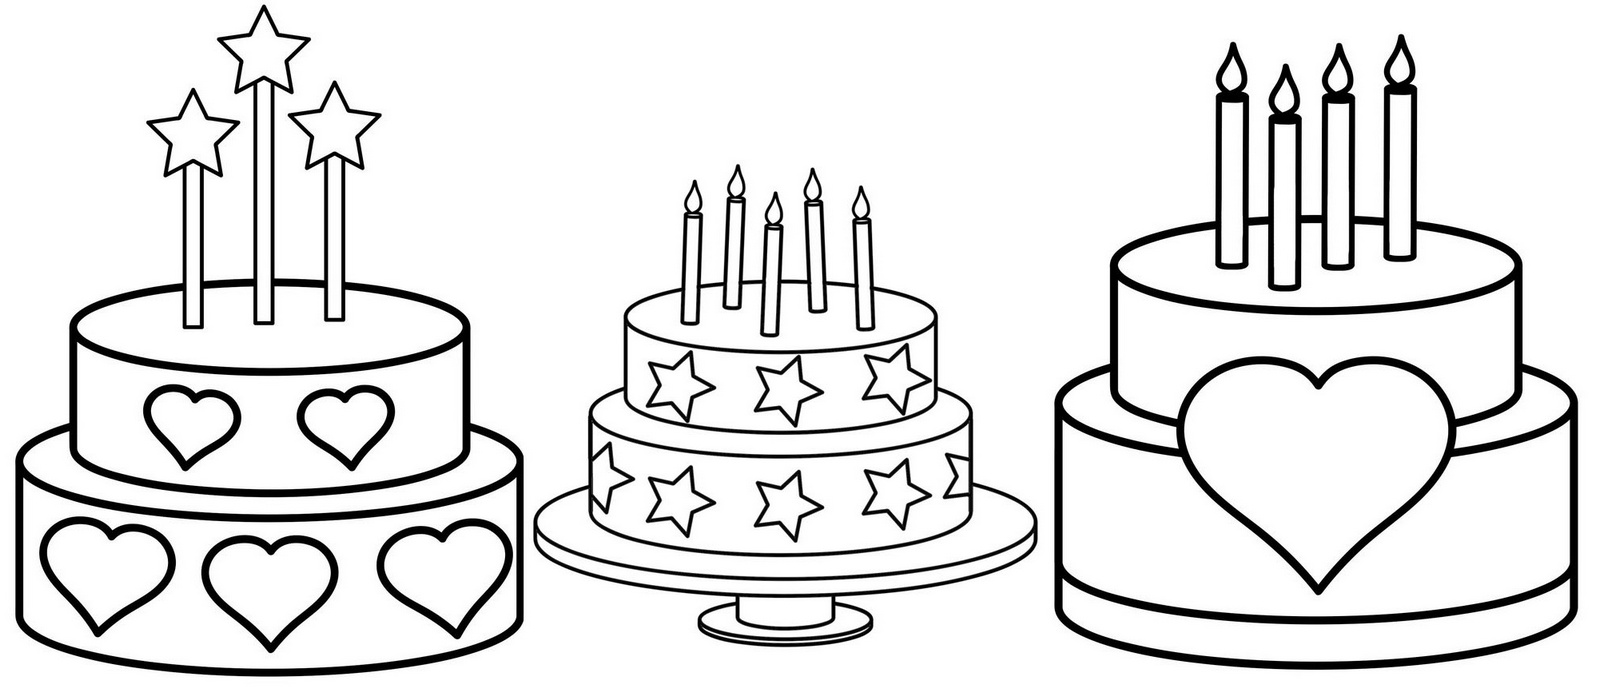 coloring pages cake free printable birthday cake coloring pages for kids coloring pages cake